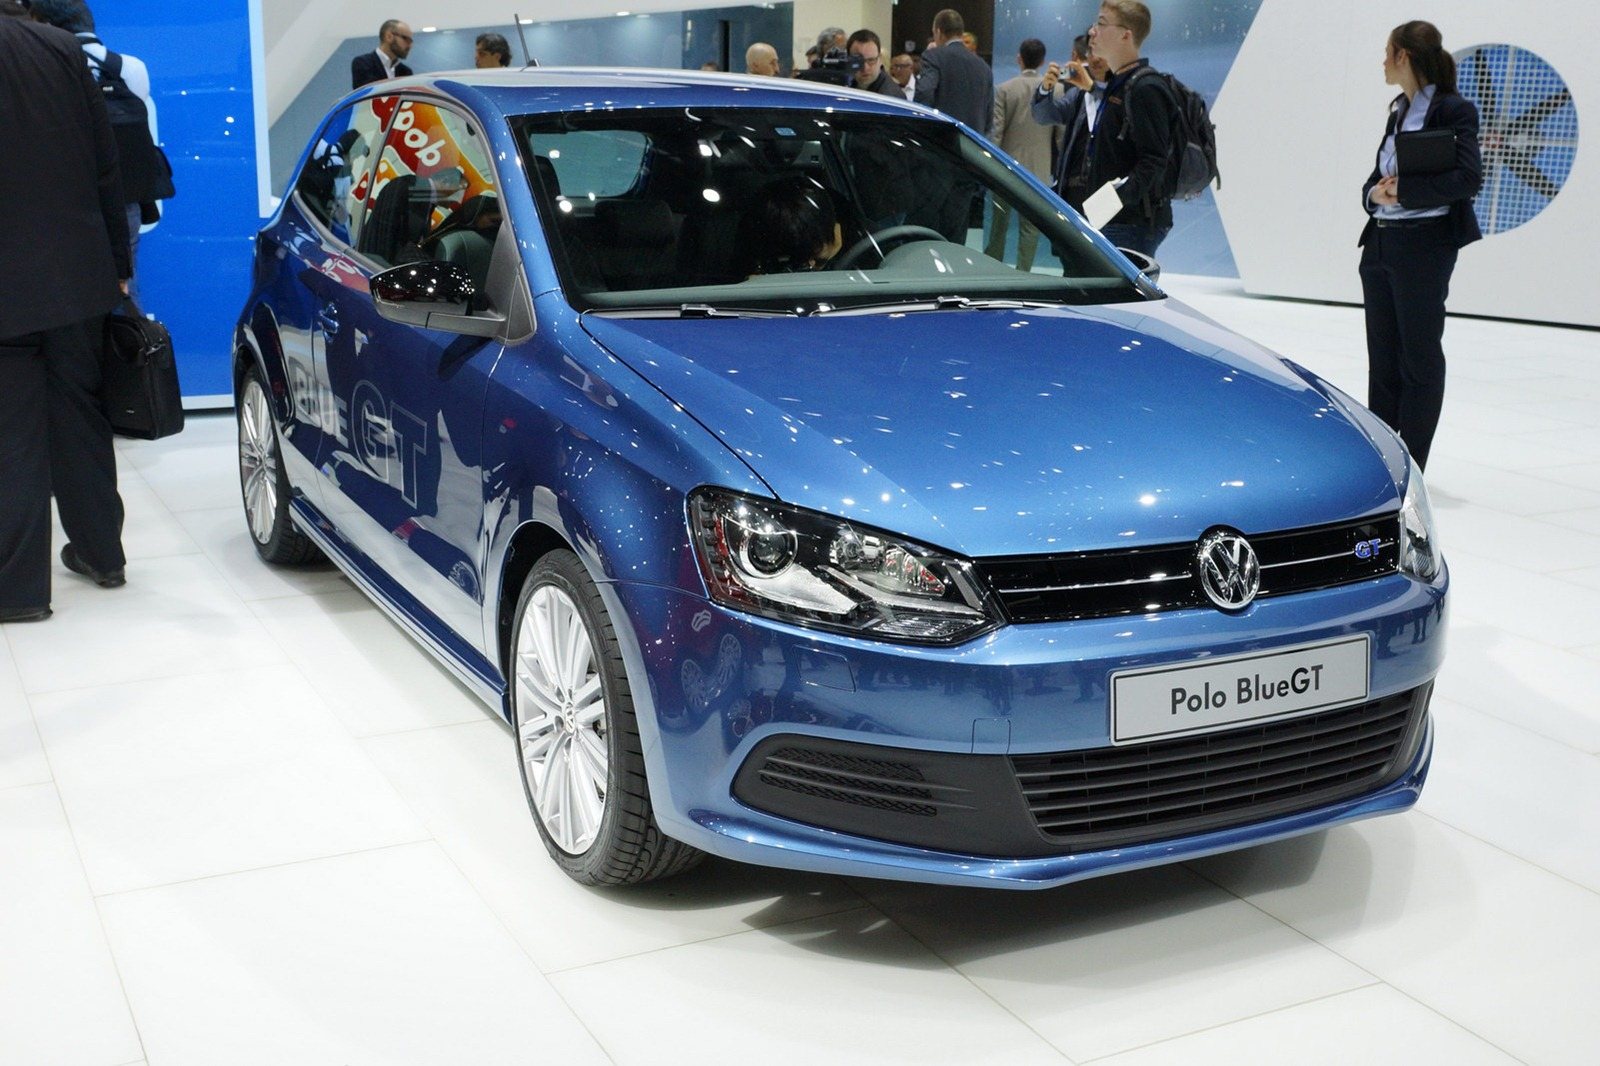 car barn sport volkswagen polo bluegt 2013. Black Bedroom Furniture Sets. Home Design Ideas